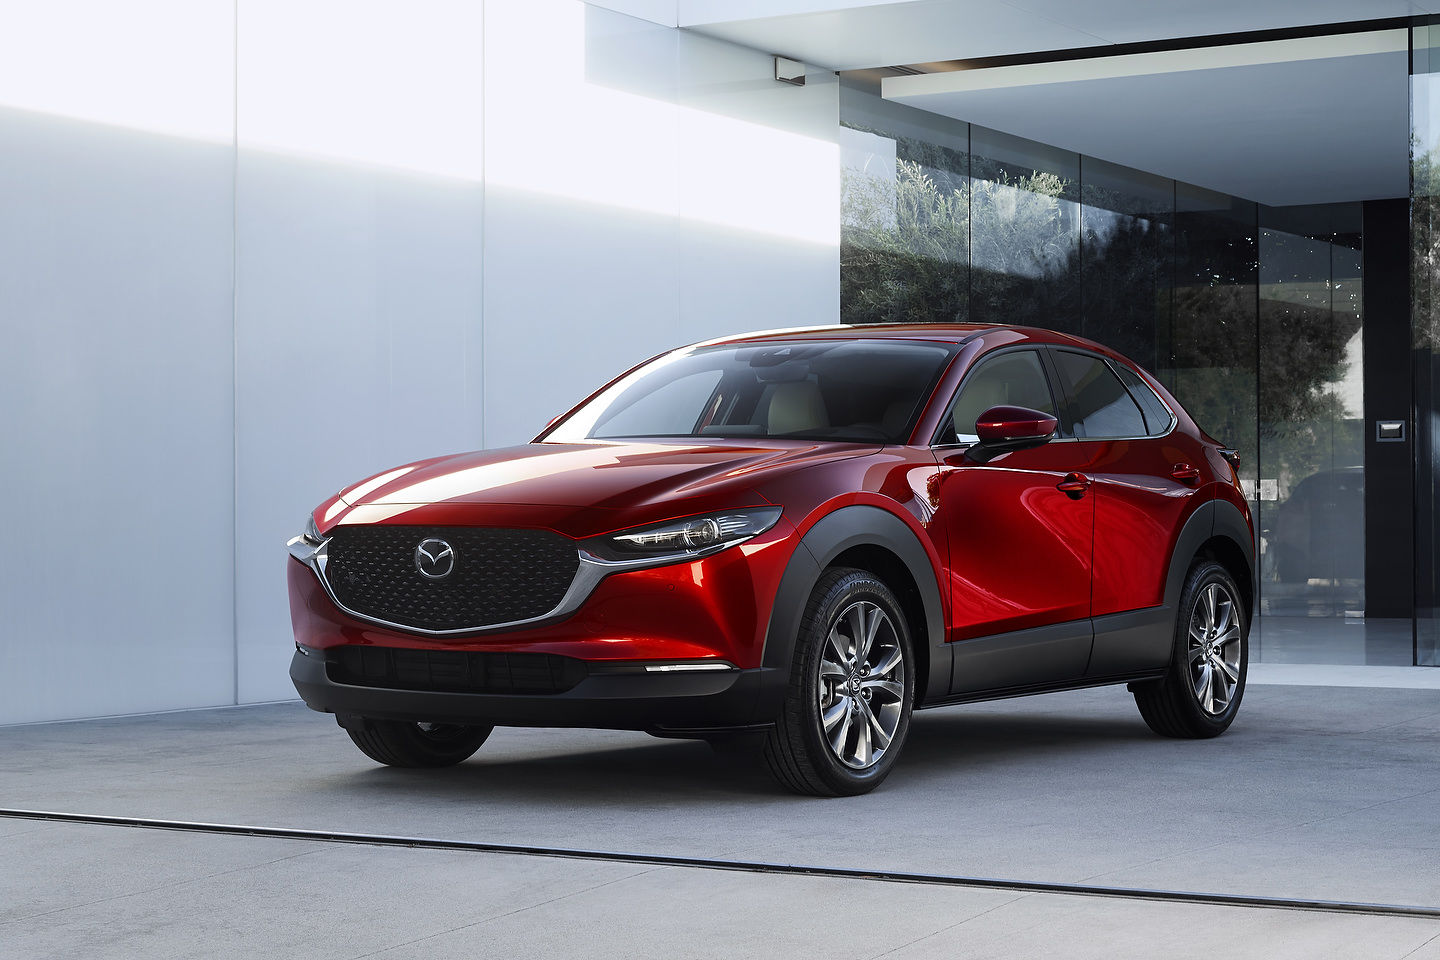 Mazda unveiled a brand-new SUV in Geneva, the CX-30